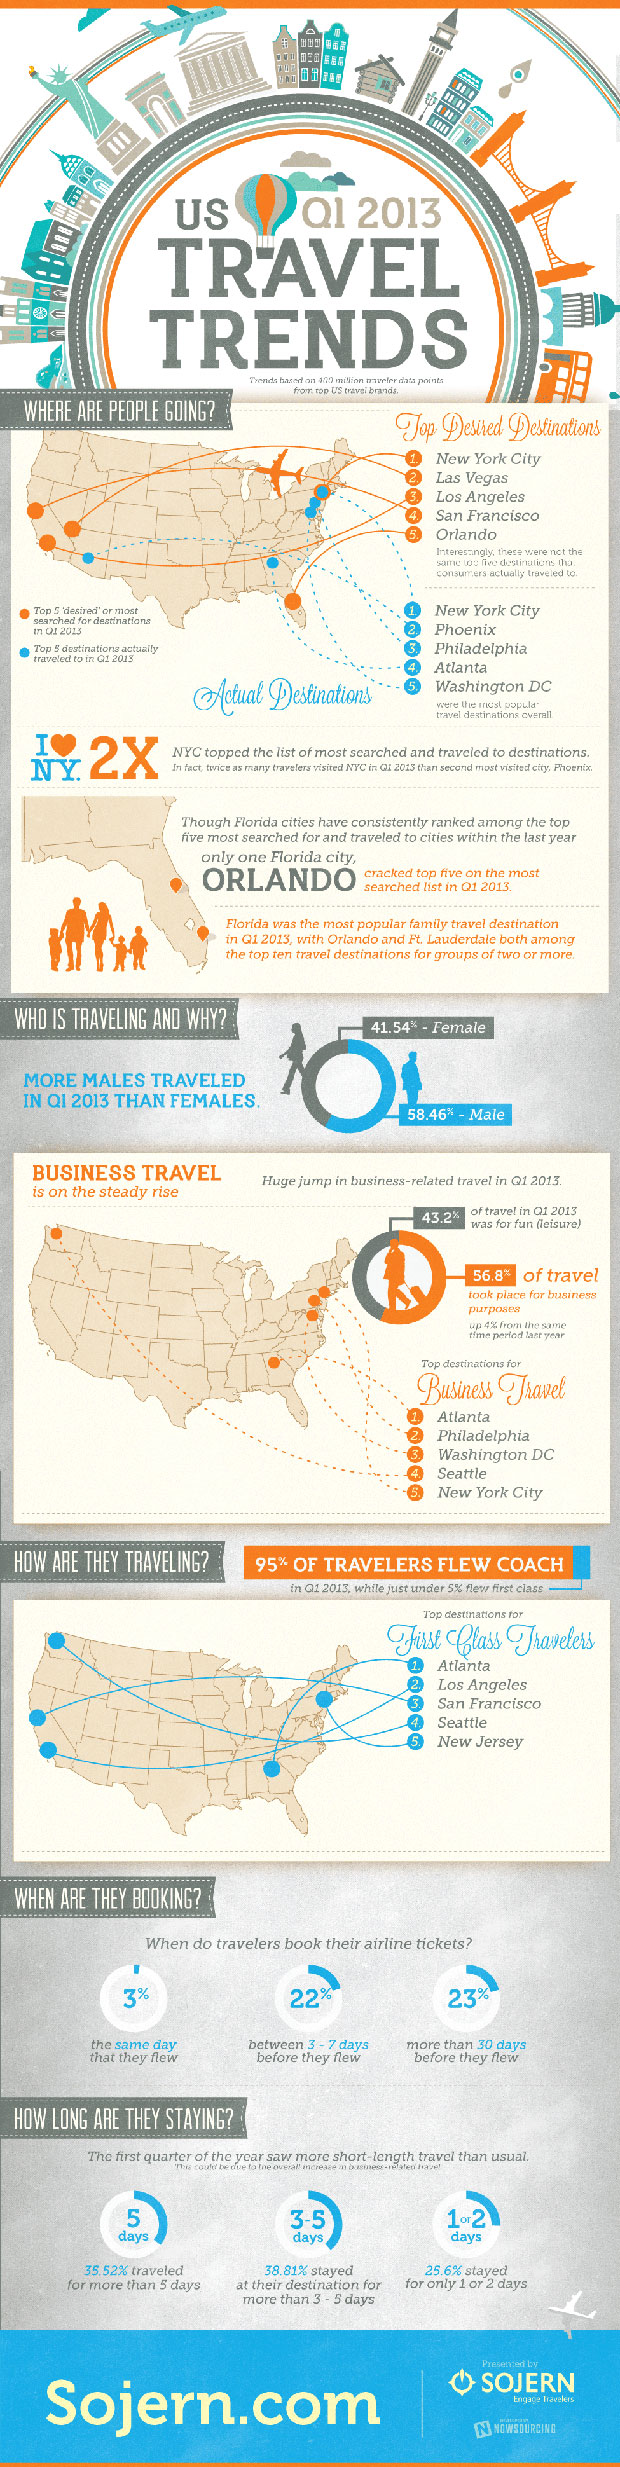 2013 Travel Trends